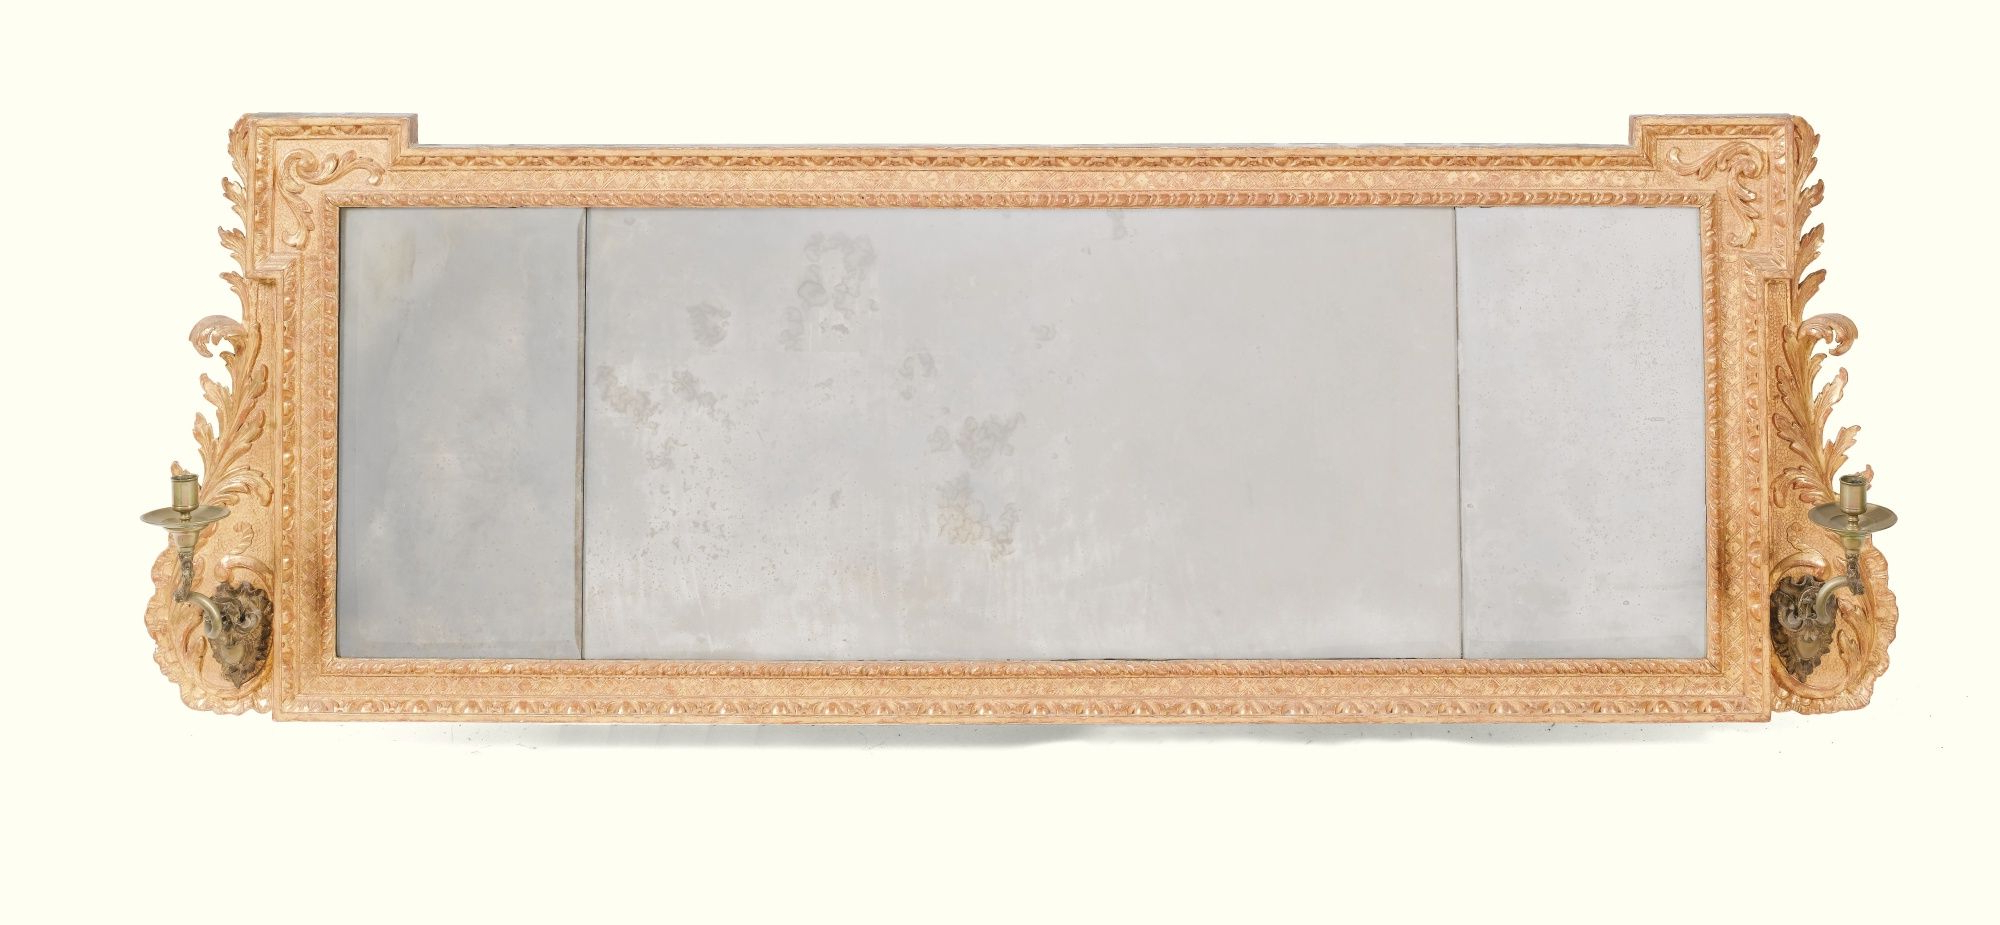 Modern & Contemporary Beveled Overmantel Mirrors Throughout Widely Used C1740 A George Ii Giltwood Overmantel Mirror Circa  (View 4 of 20)